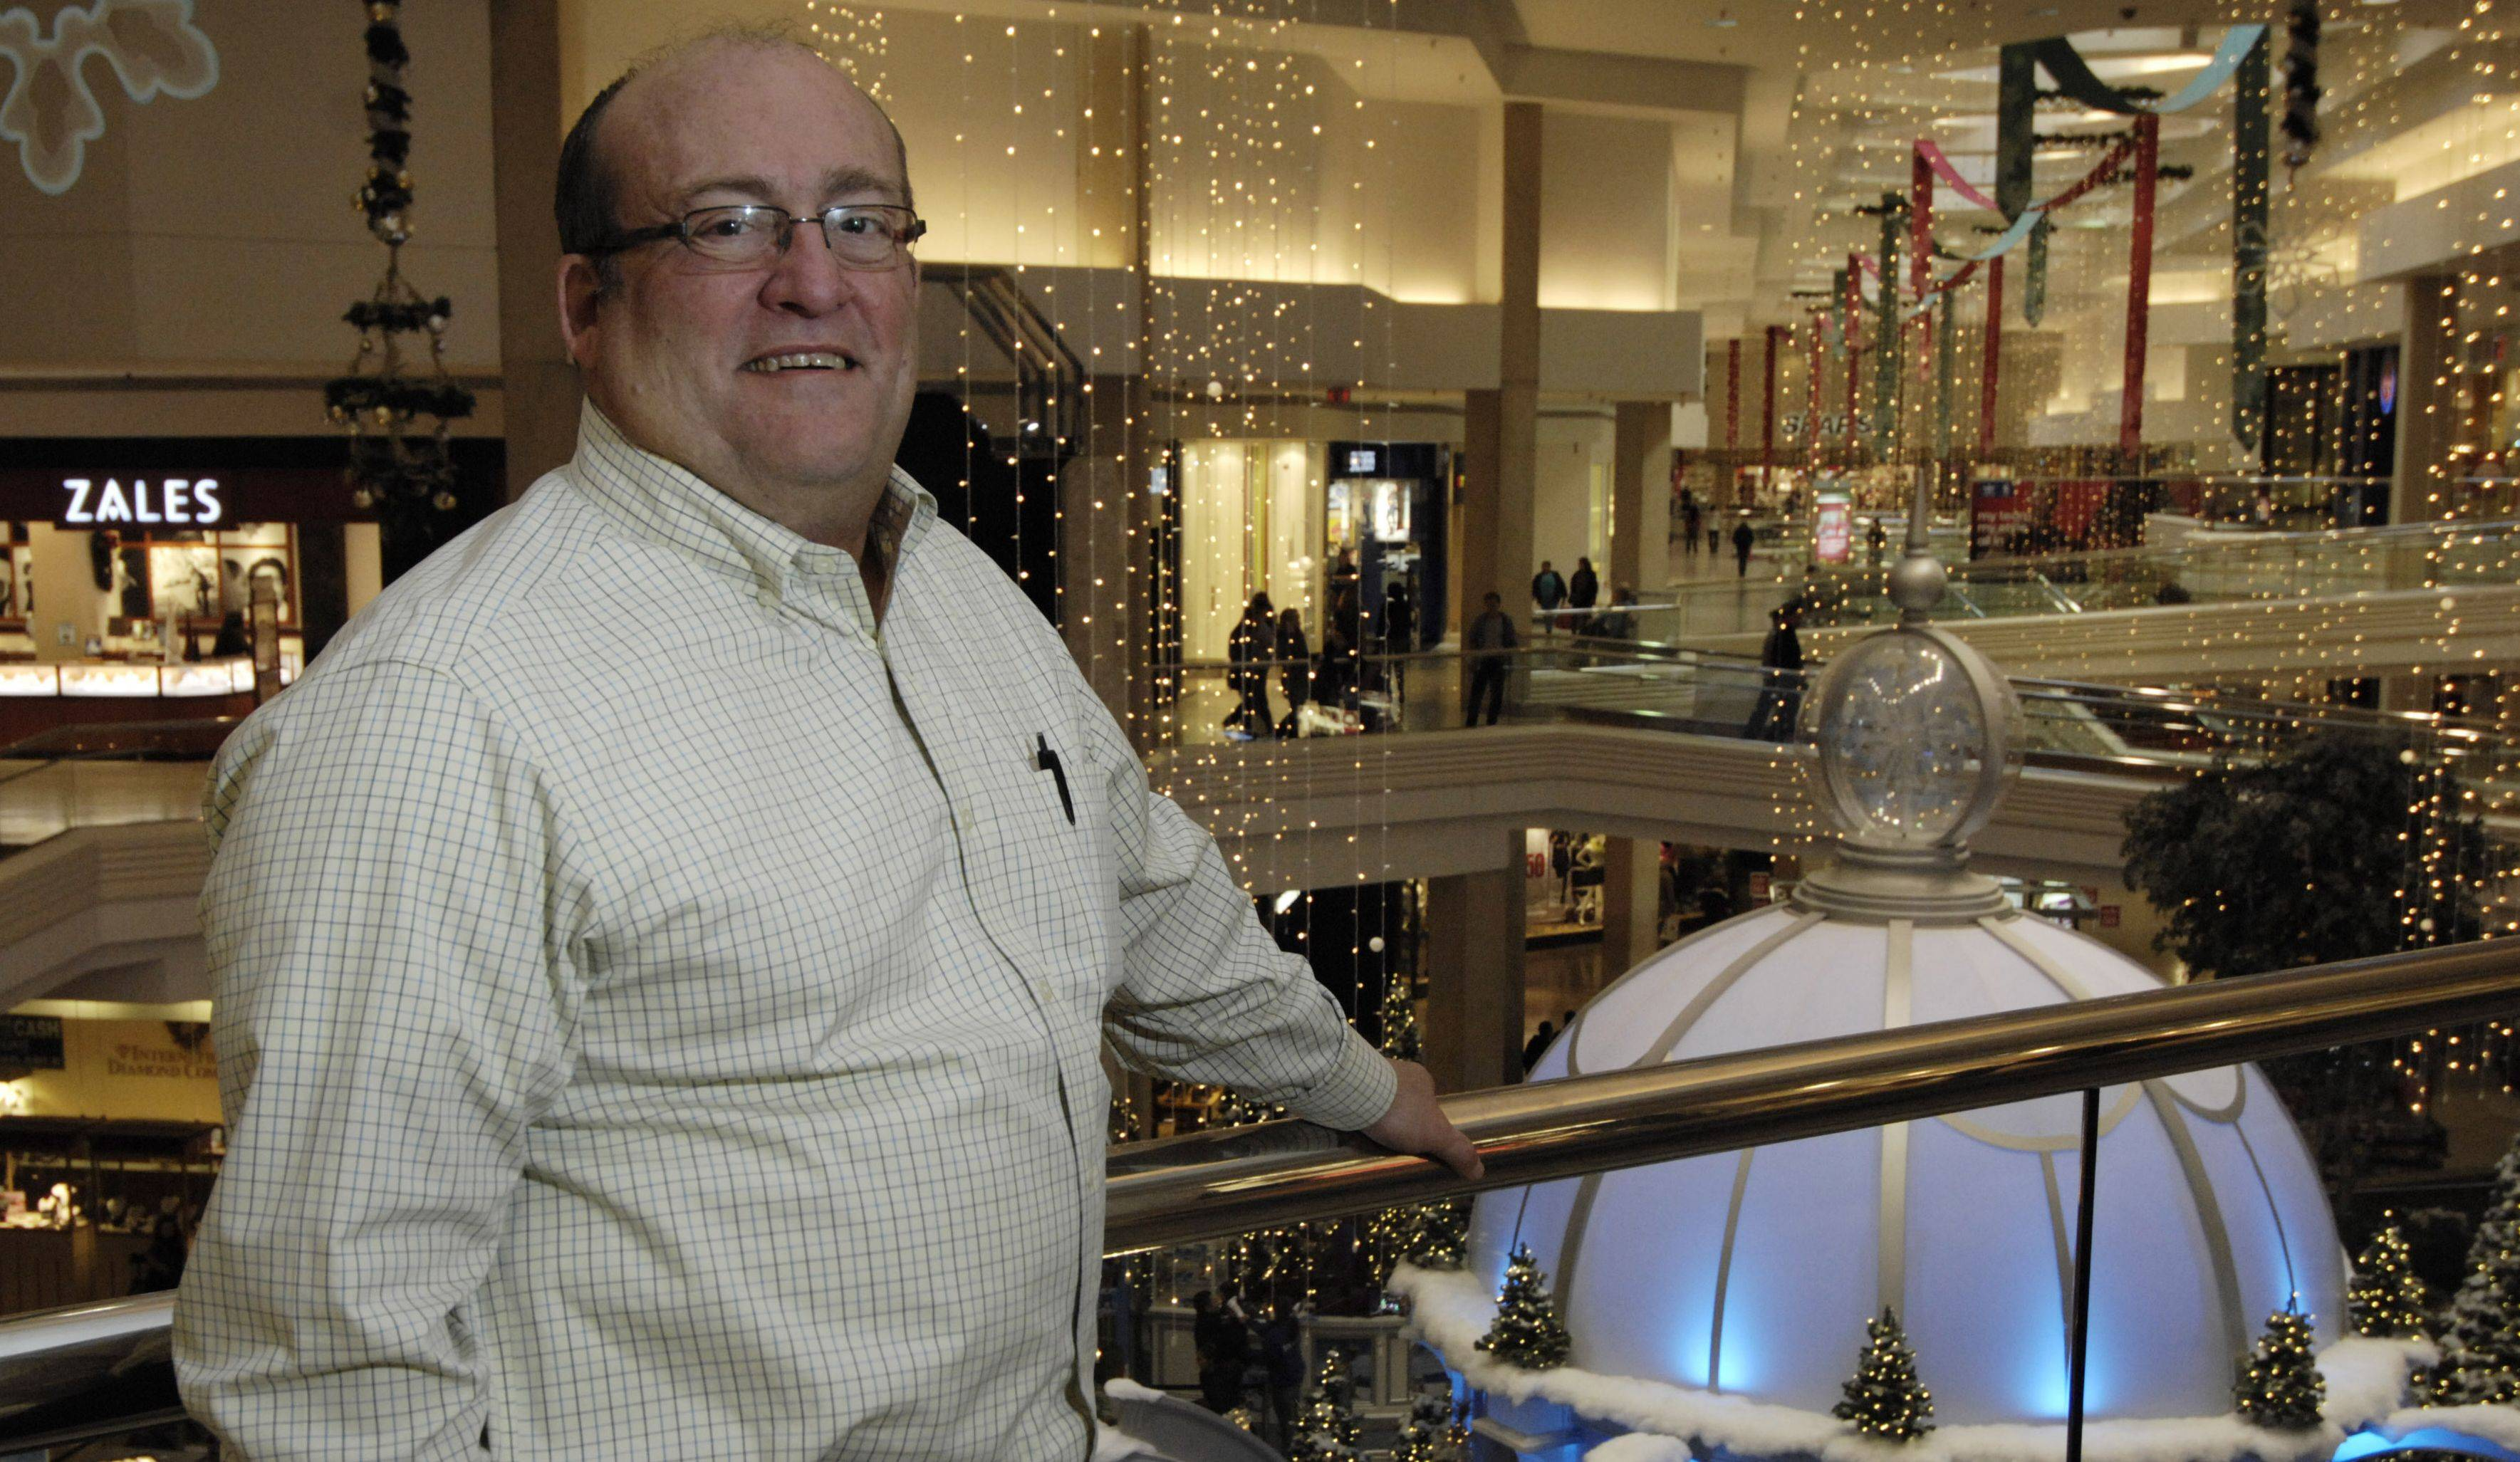 After 12 holiday shopping seasons as general manager of Woodfield Mall in Schaumburg, Marc Strich will be transferring in January to another Taubman Co. mall in Palm Beach, Fla.